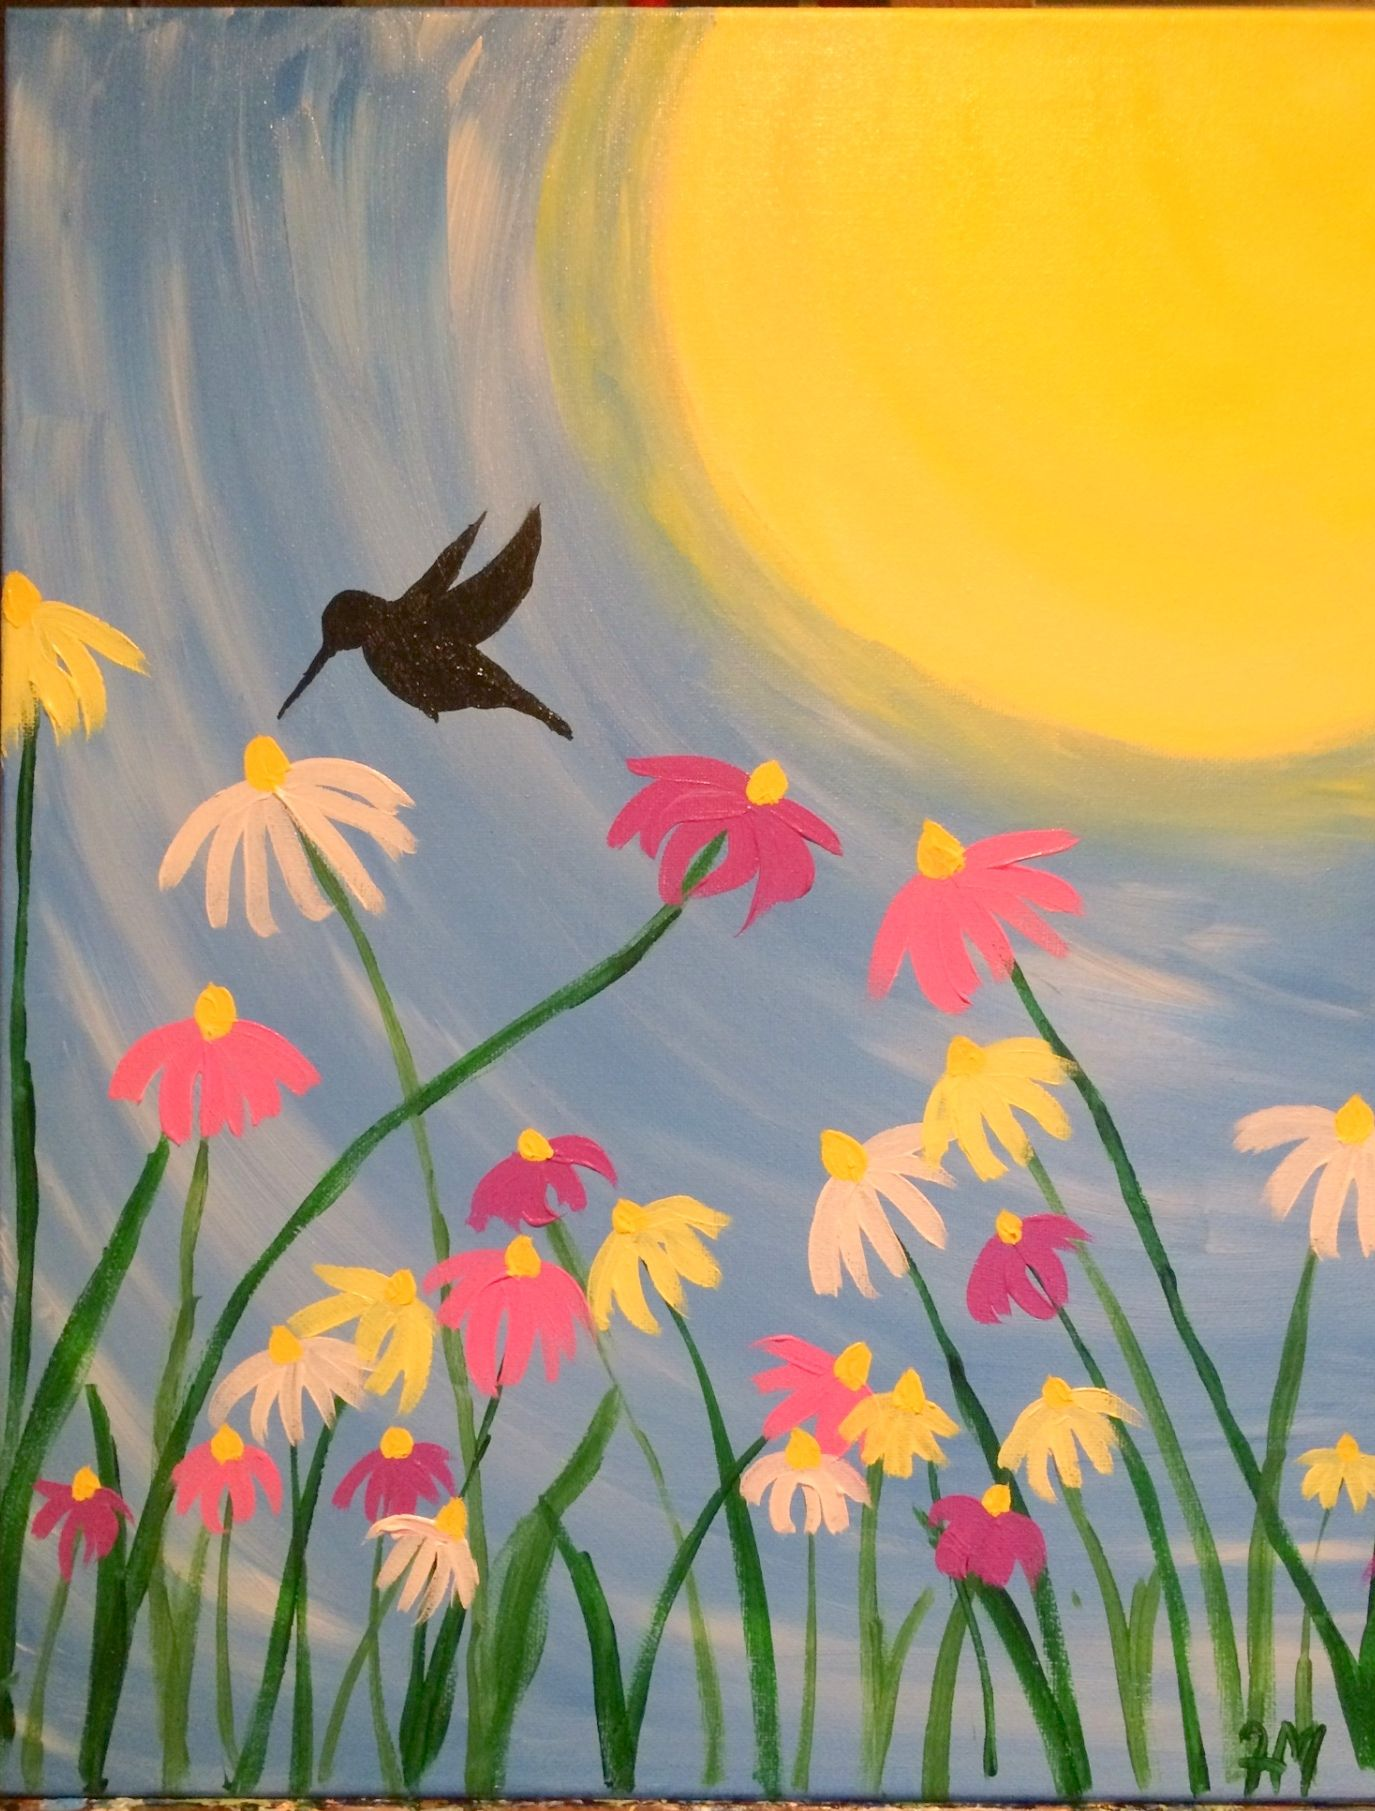 Hummingbird | Art painting, Painting, Canvas art